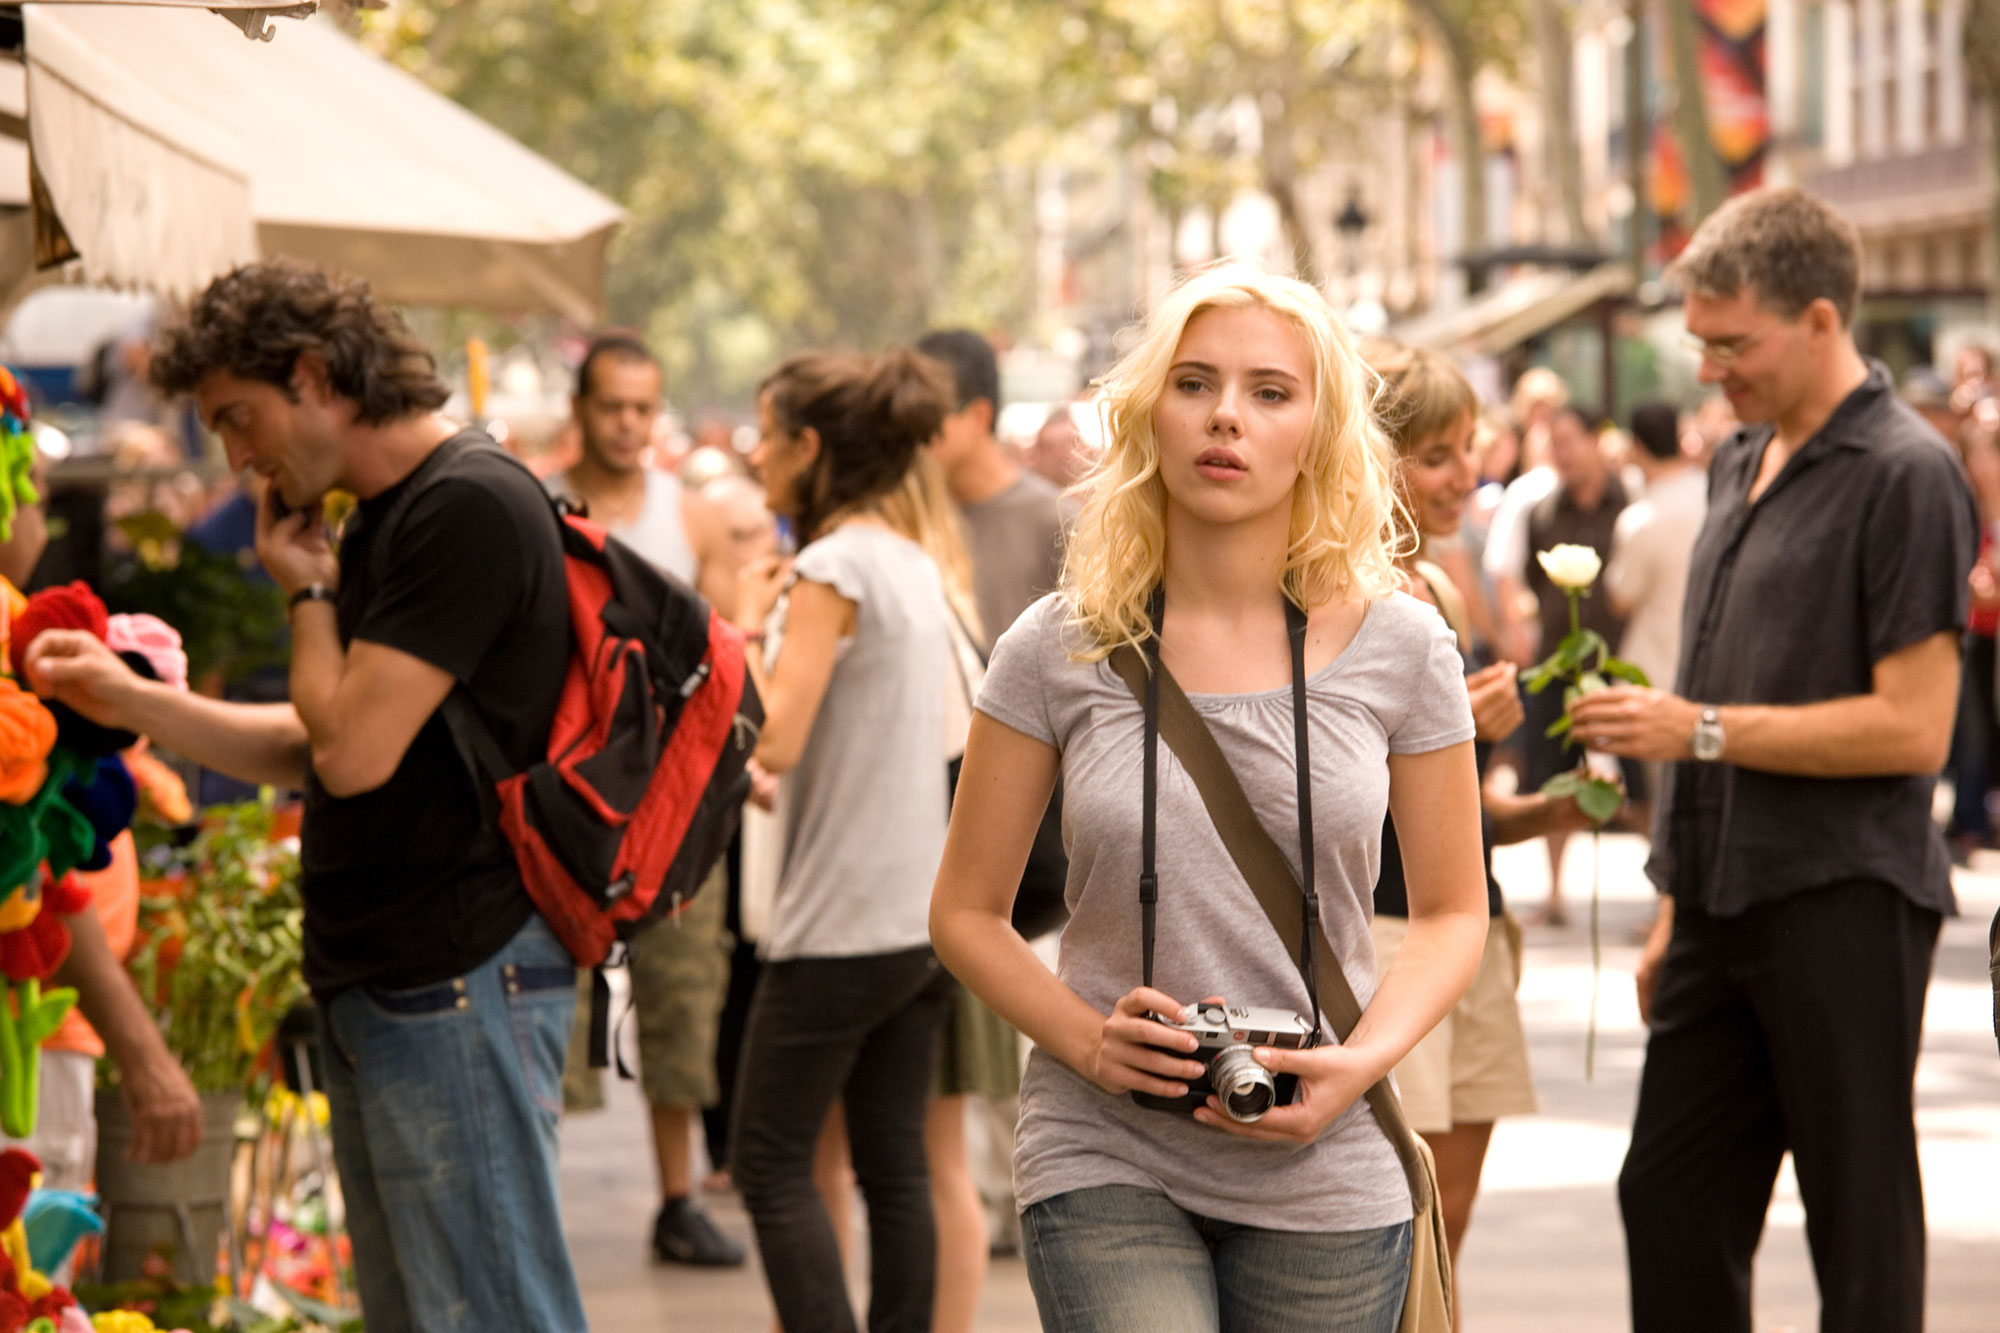 Vicky Cristina Barcelona Film Locations In Barcelona And Oviedo Spain Almost Ginger